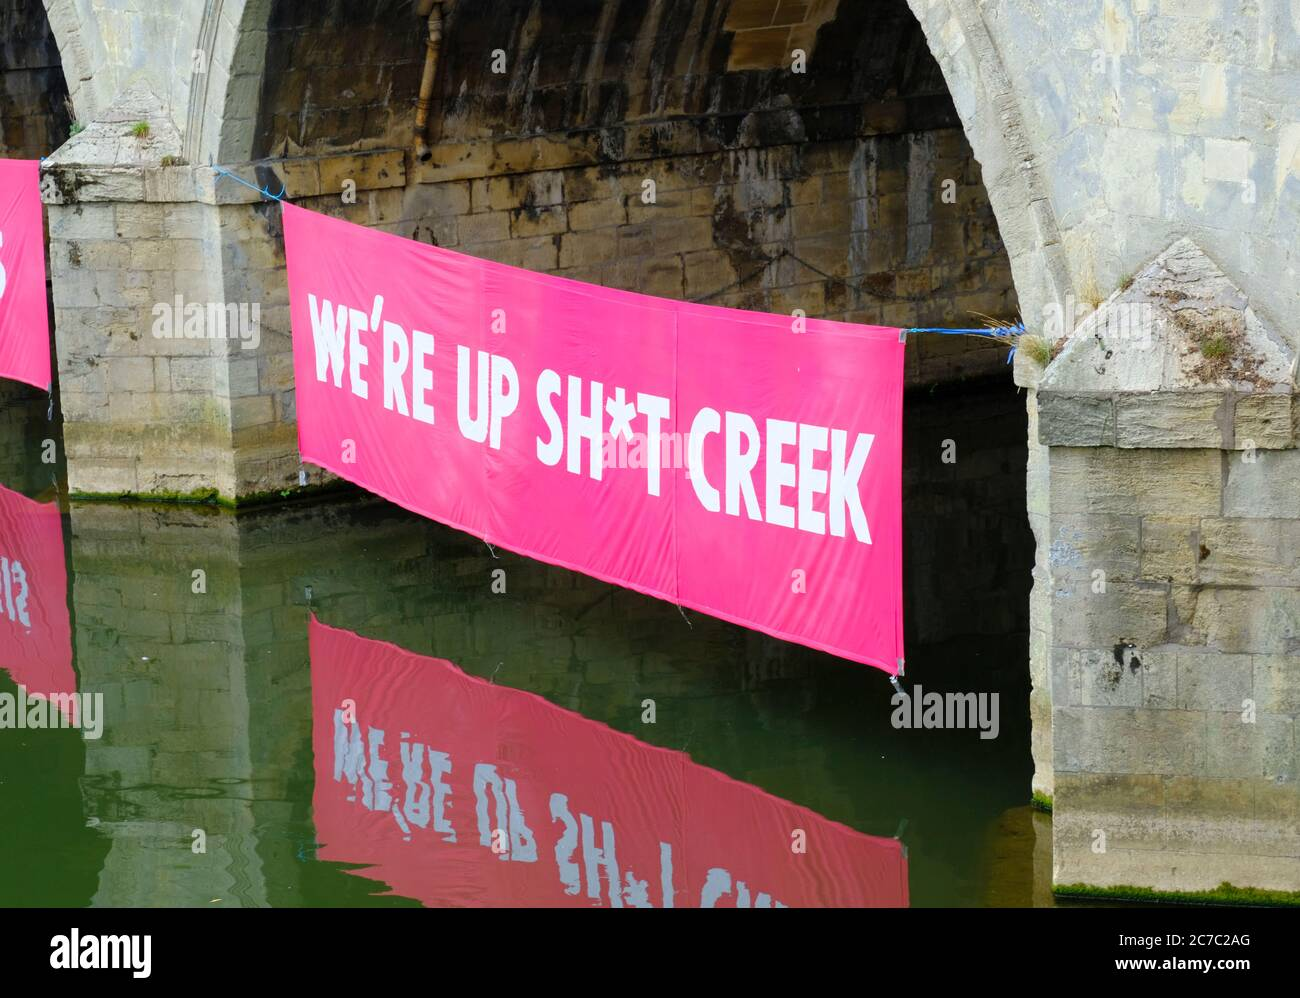 bath-16th-july-2020-climate-change-protestors-extinction-rebellion-have-placed-banners-under-the-arches-of-historic-pulteney-bridge-on-the-river-avon-in-bath-the-message-conveyed-is-that-we-should-rebuild-after-the-corona-virus-pandemic-in-a-green-manner-which-is-sympathetic-to-the-environment-credit-jmf-newsalamy-live-news-2C7C2AG.jpg